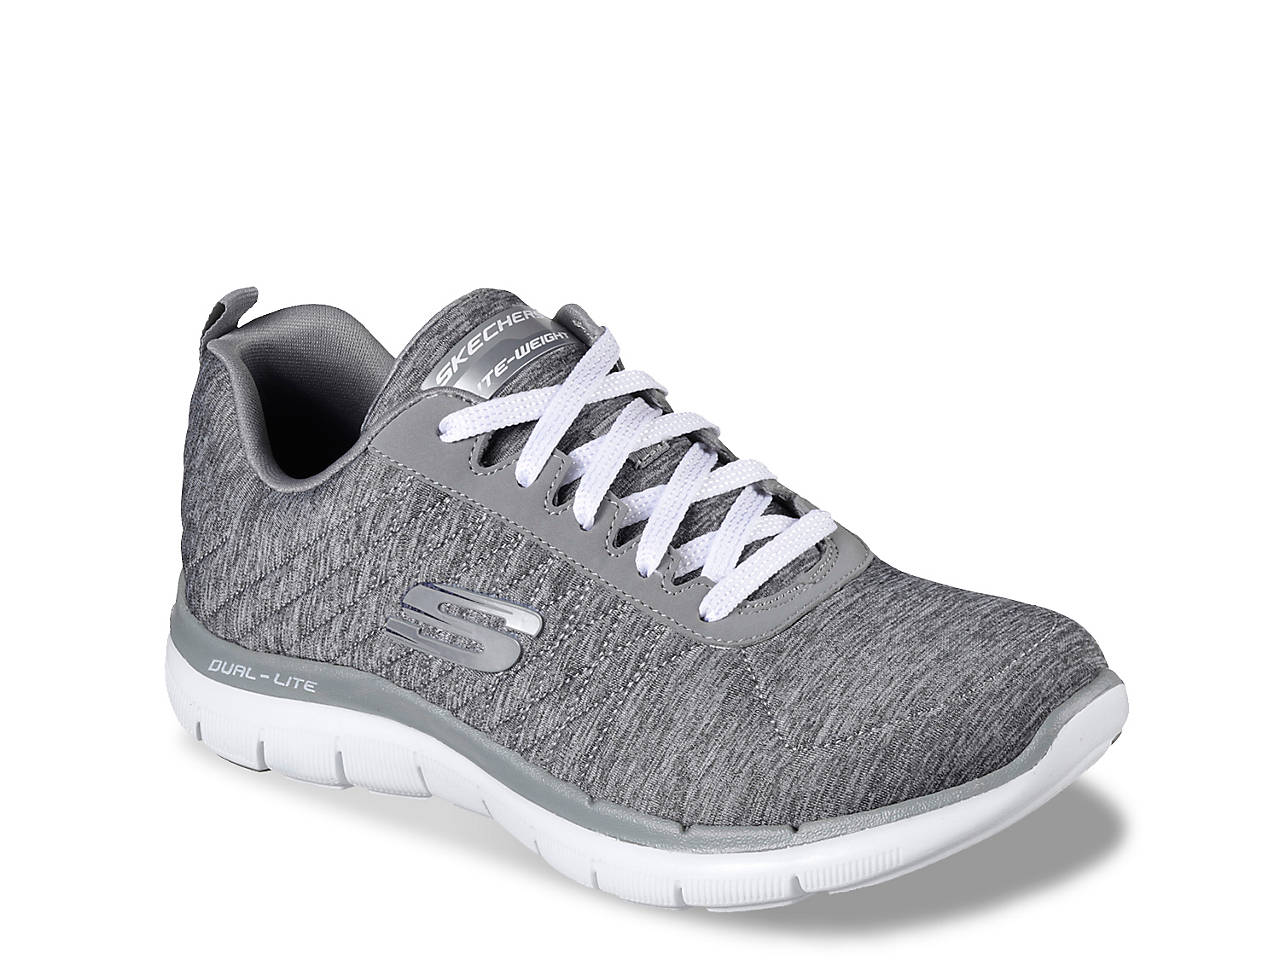 Skechers Flex Appeal 2.0 Sneaker - Women s Women s Shoes  b96866e76